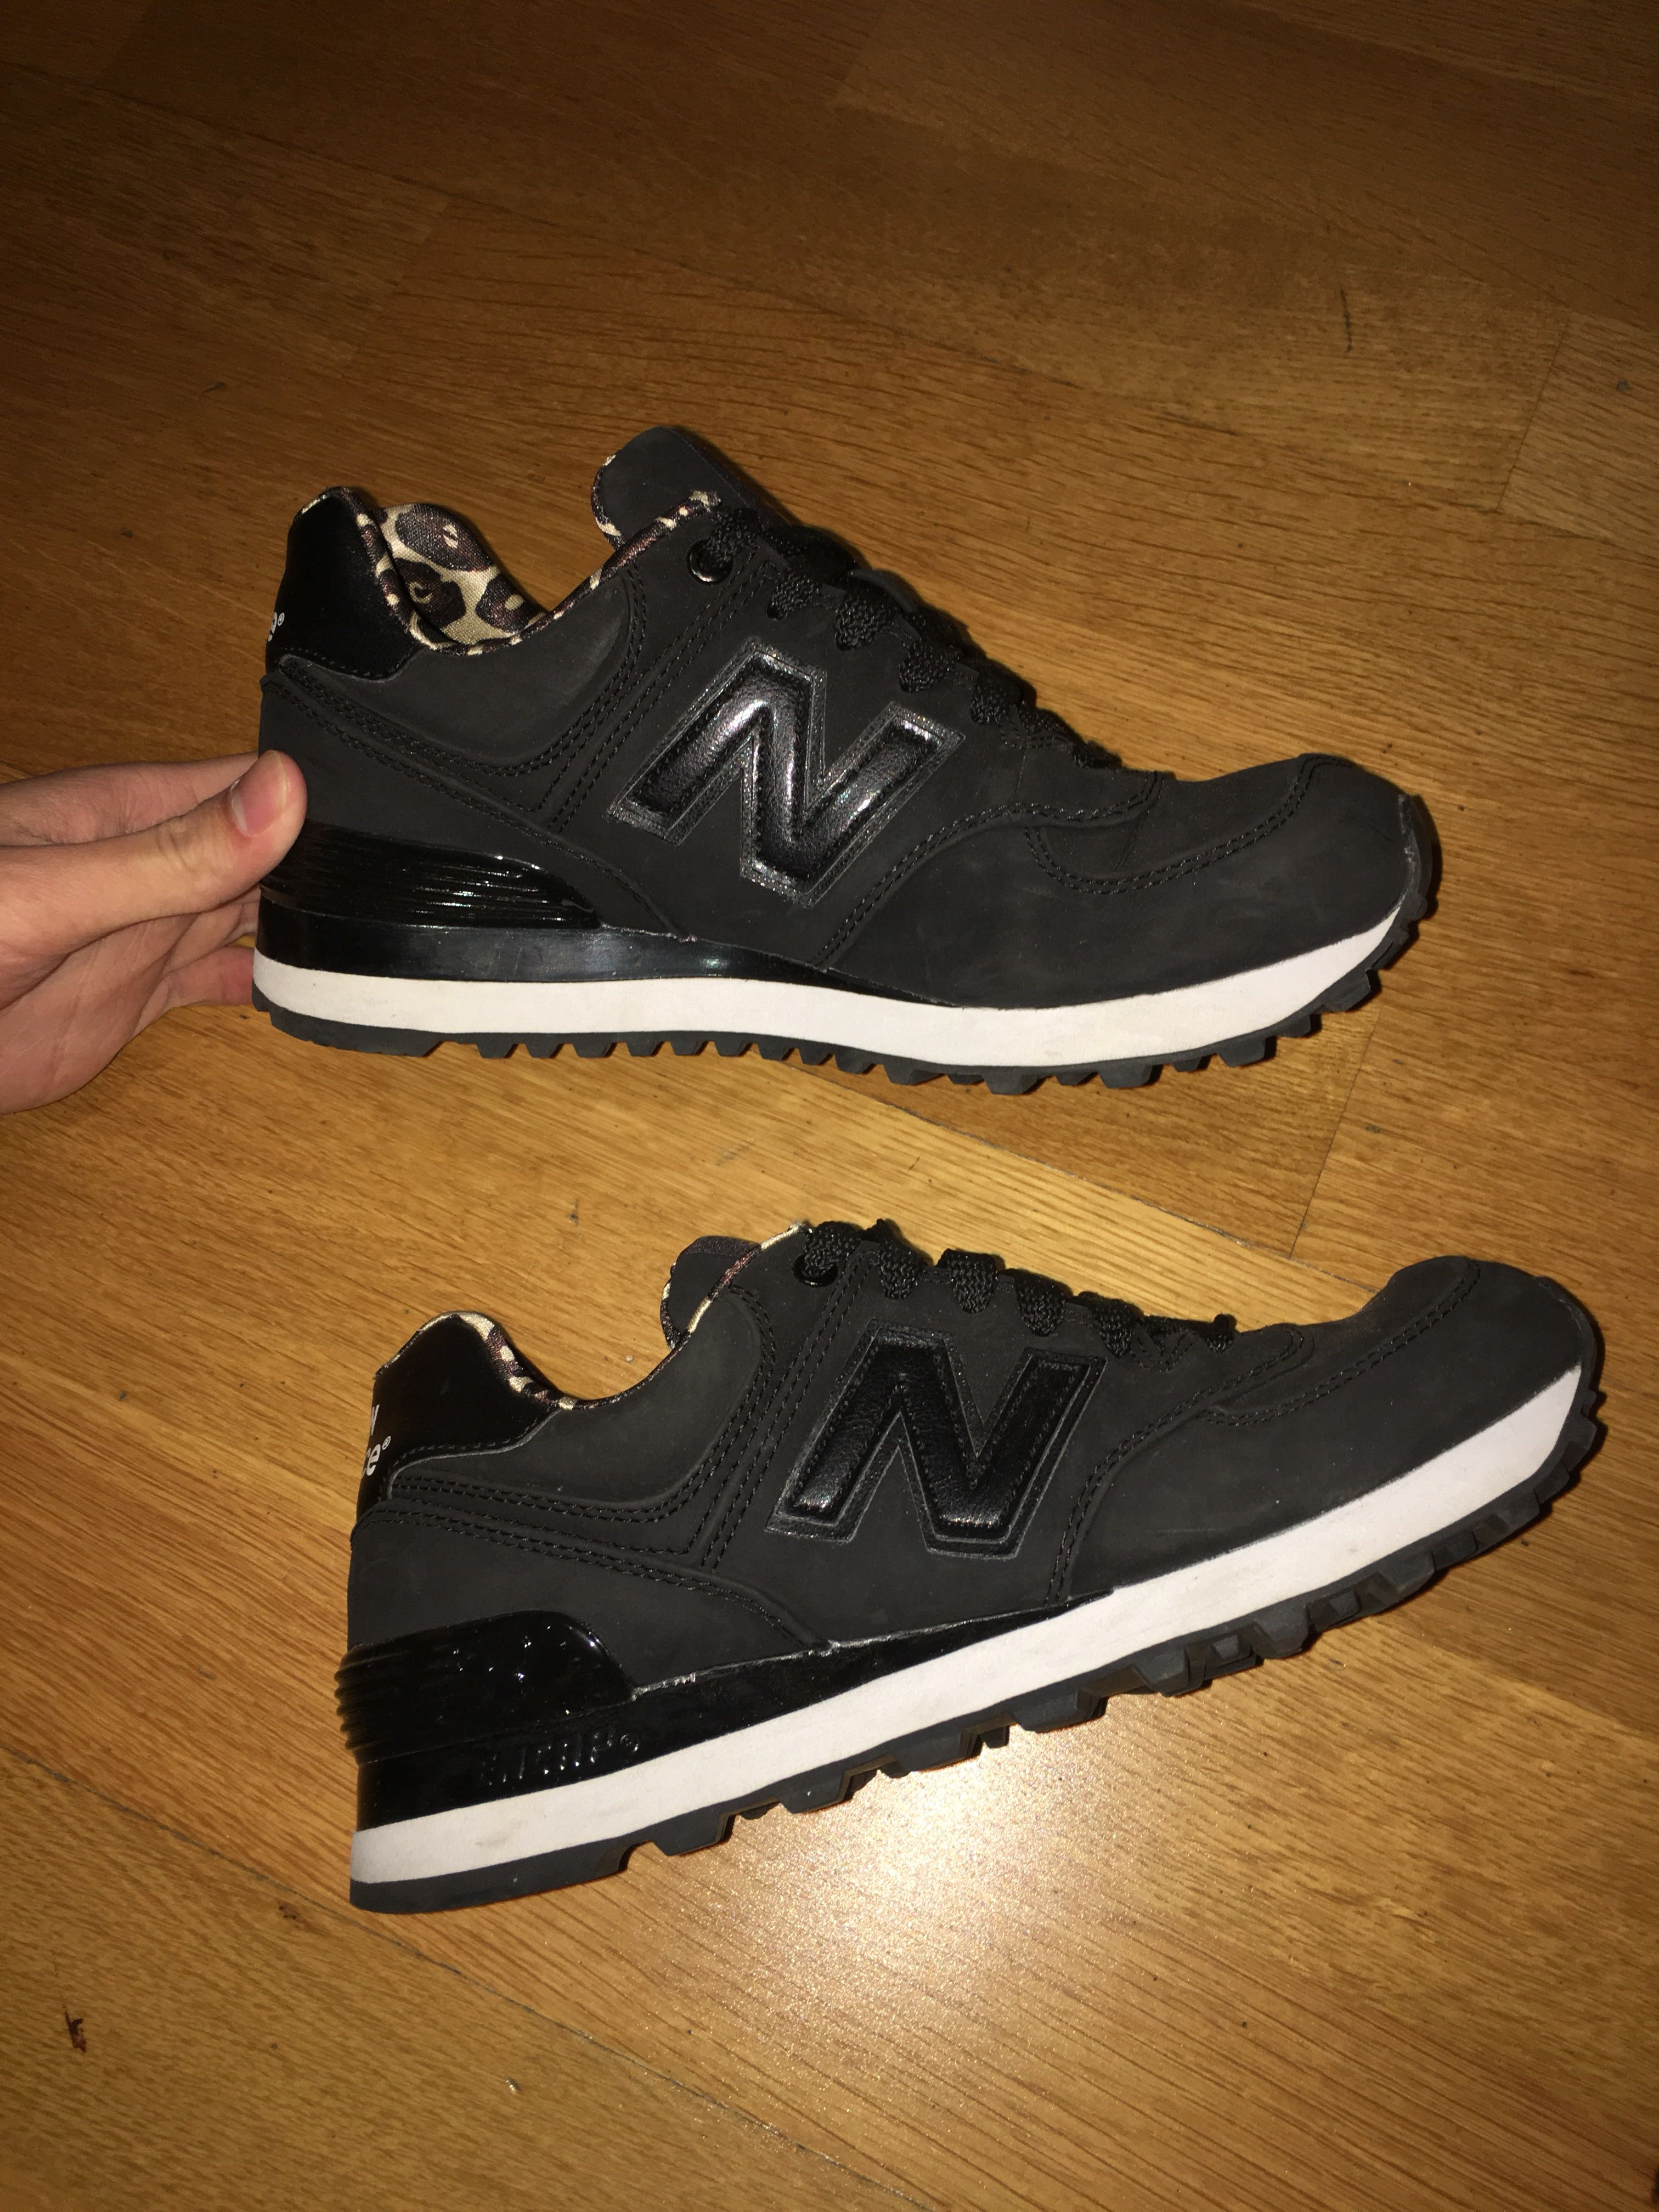 New Balance black and leopard sneakers